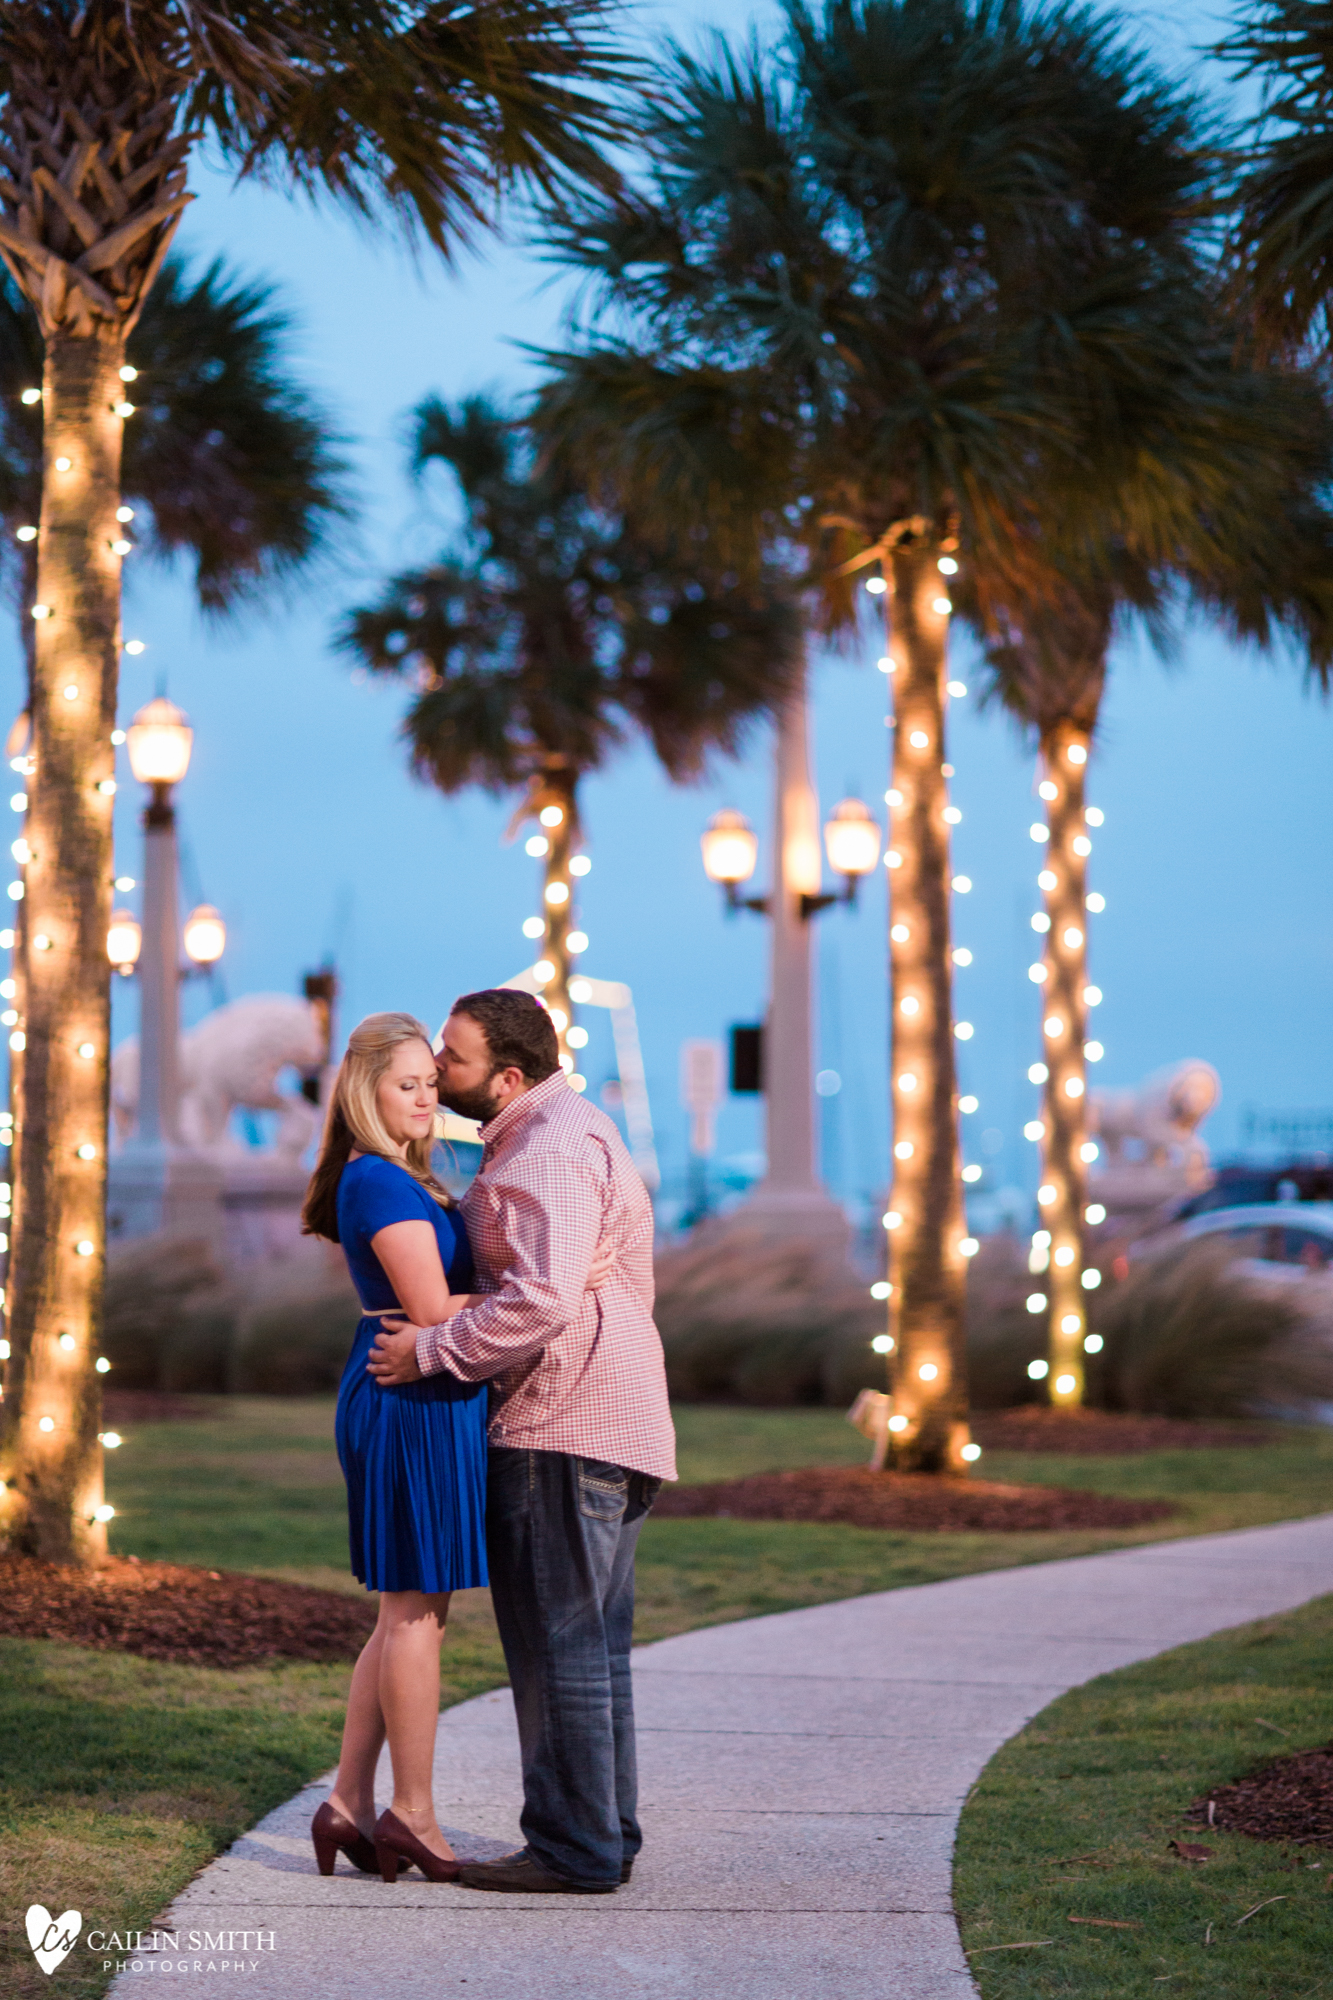 Shari_Brent_St_Augustine_Engagement_Photography_022.jpg